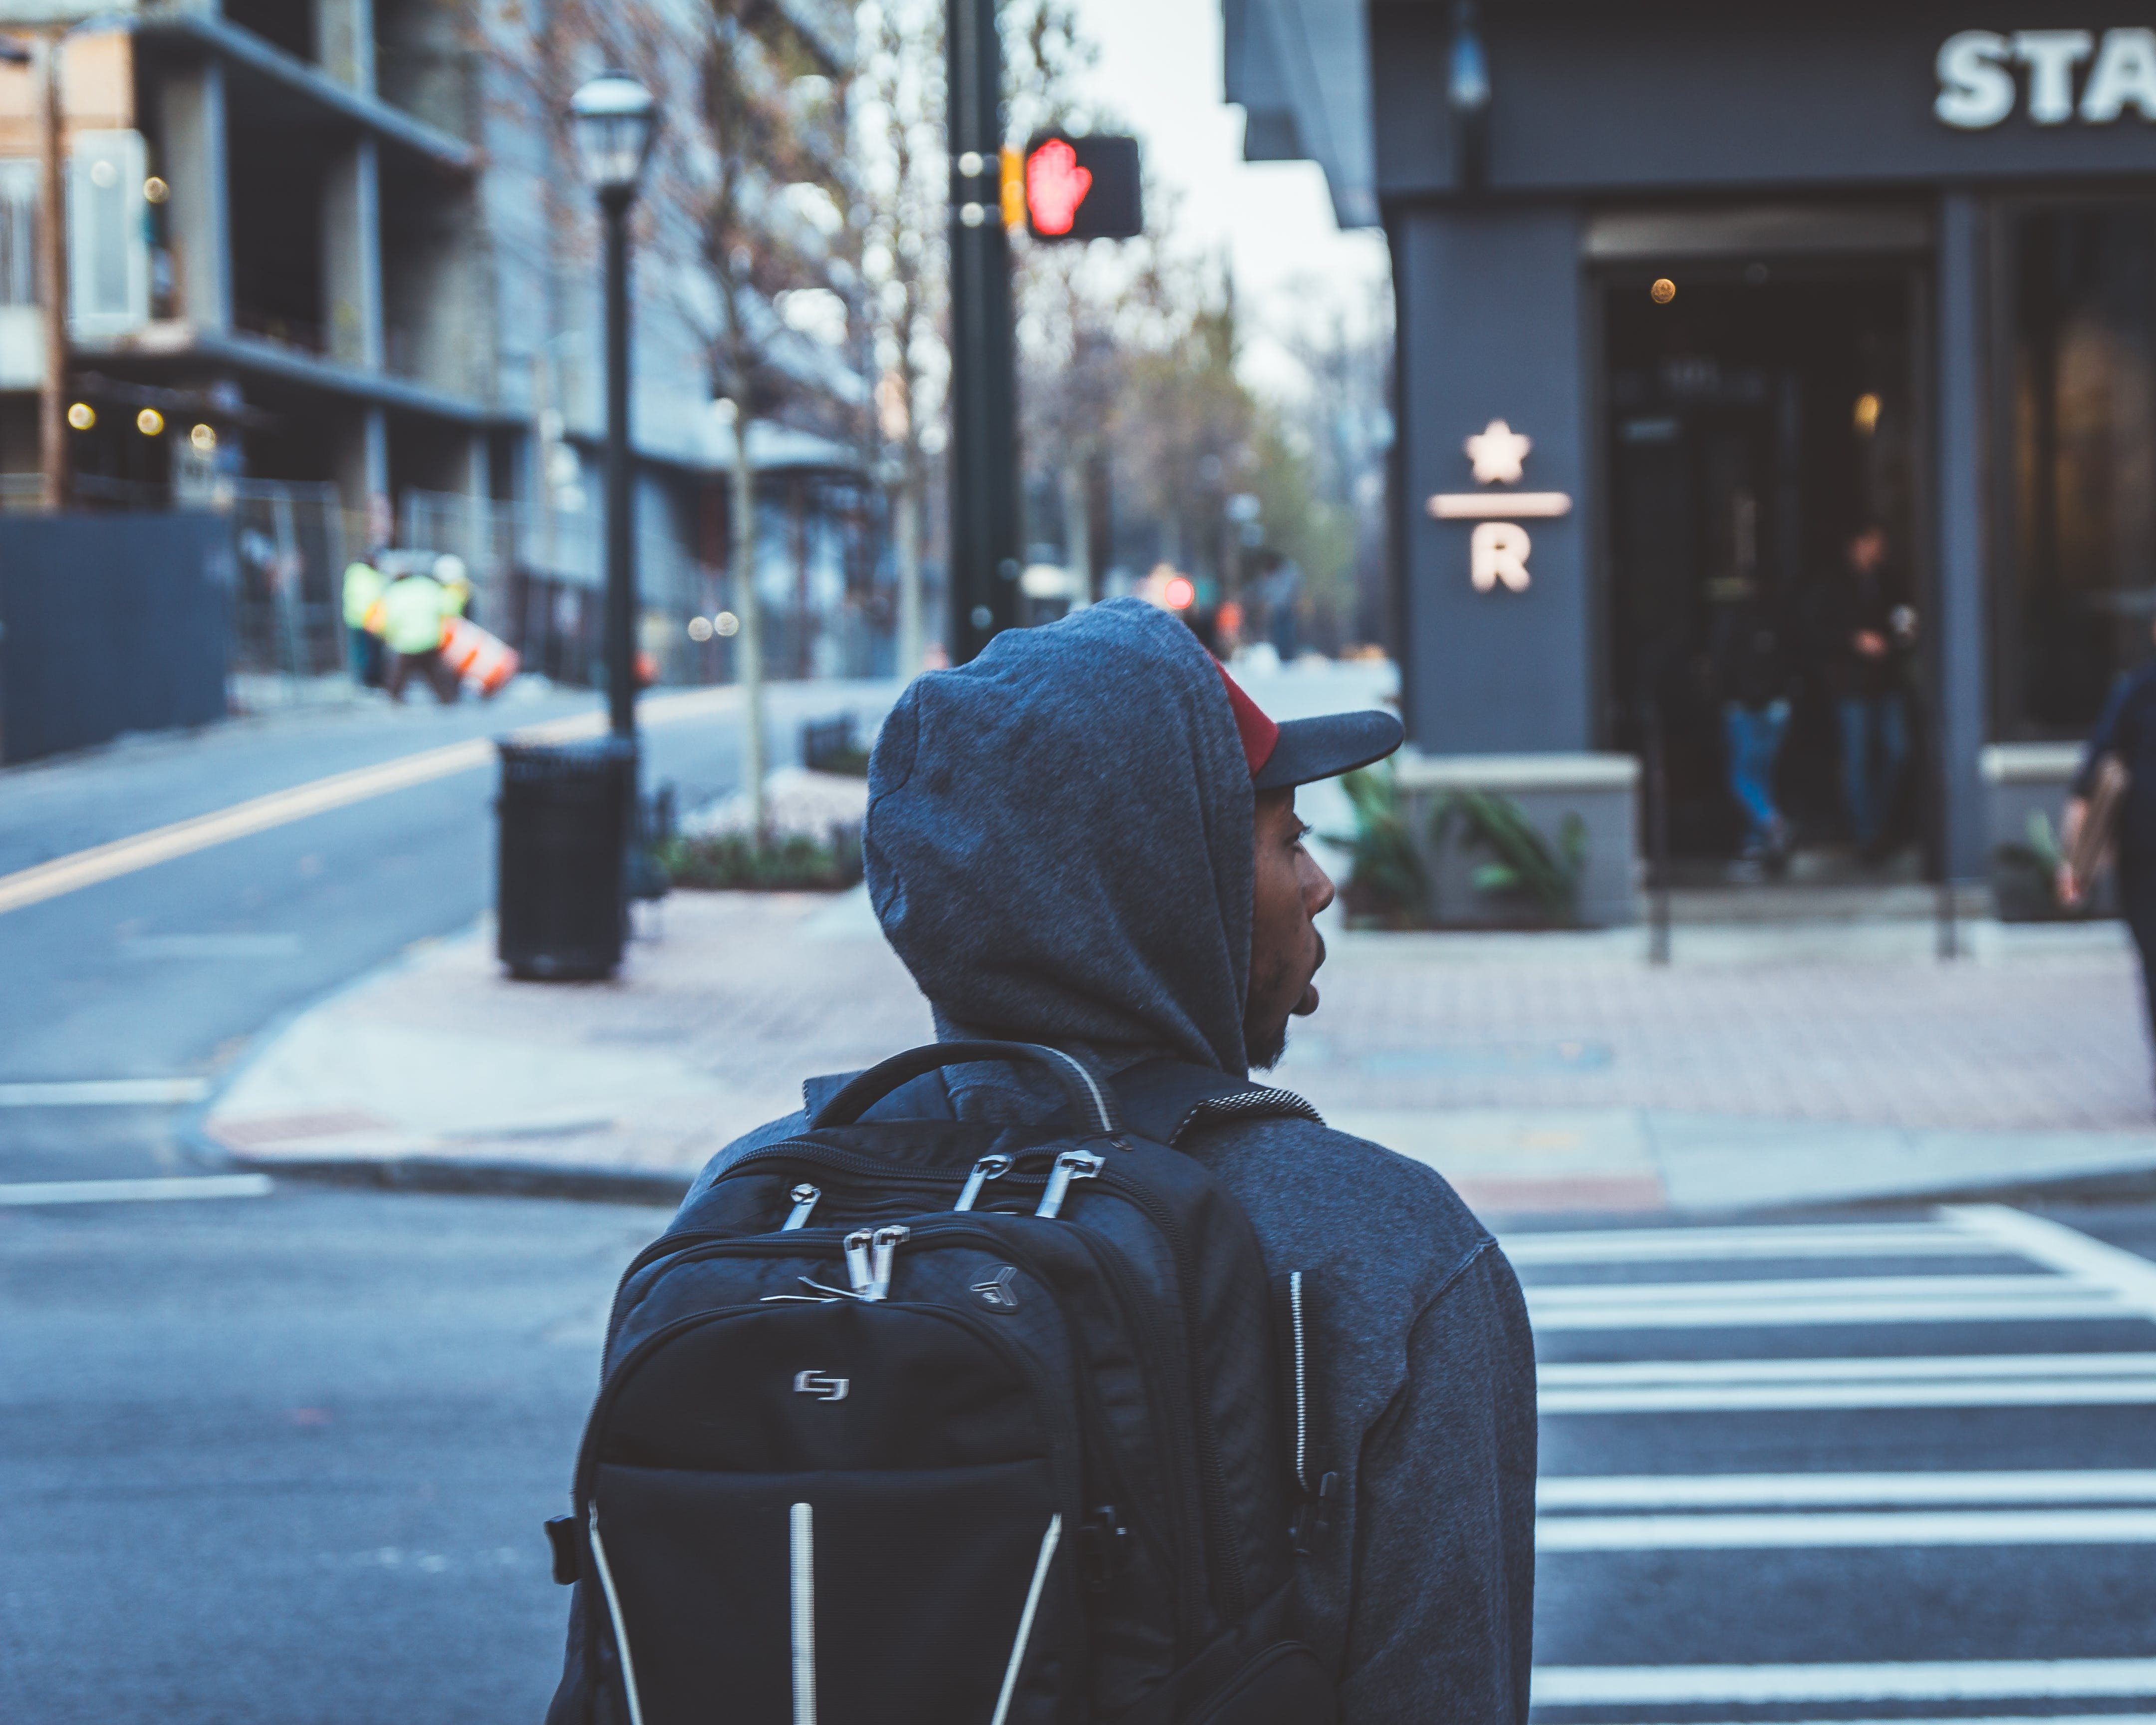 Person Wearing Black Backpack About to Cross Pedestrian